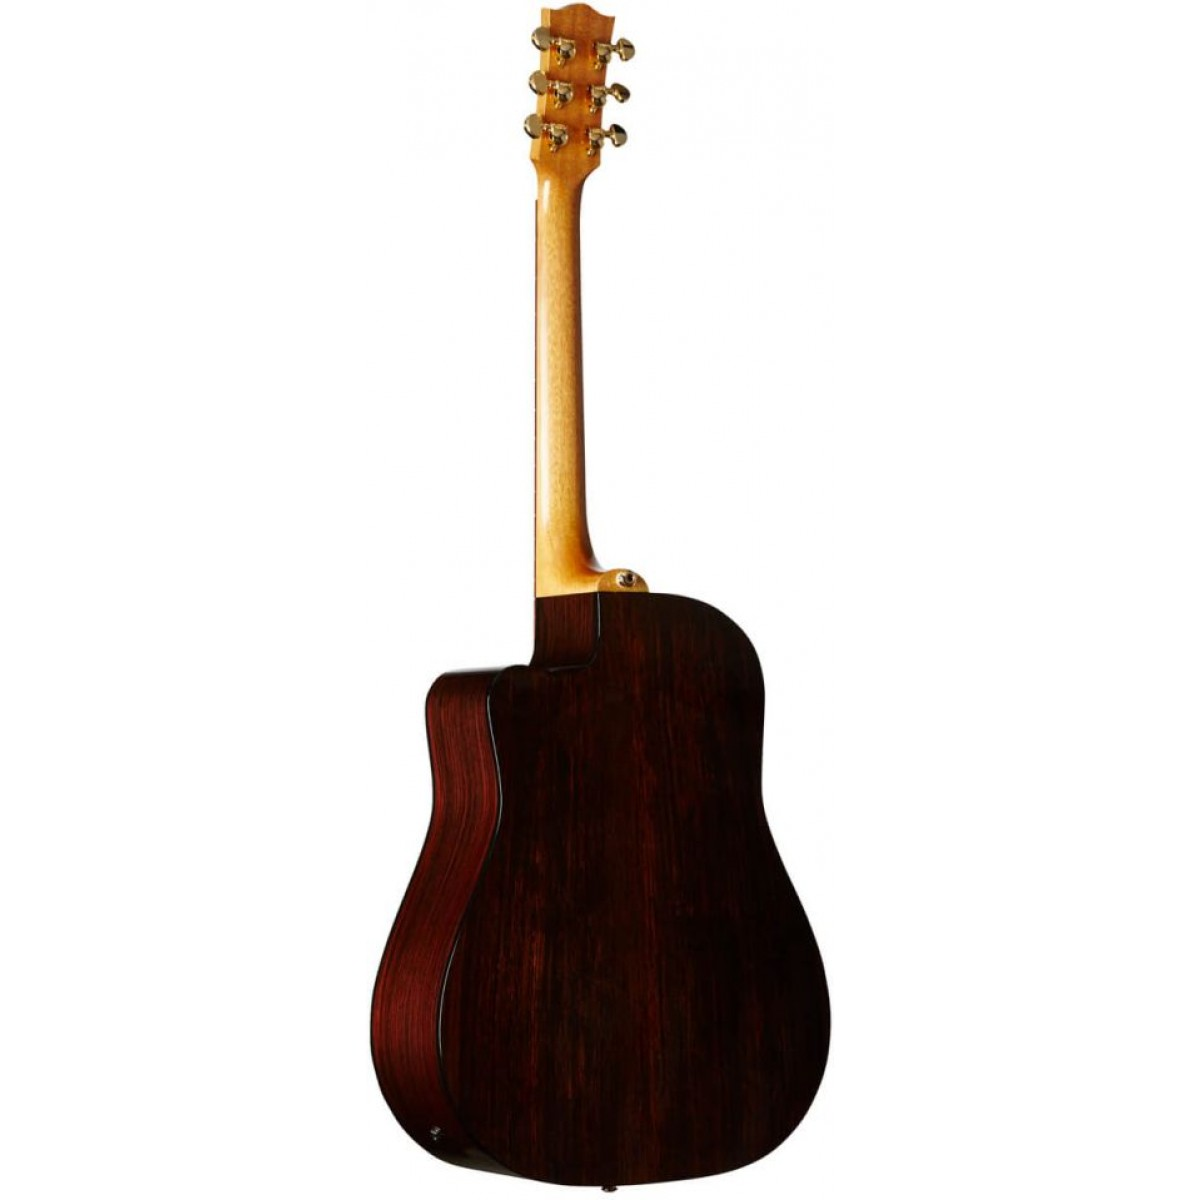 maton te1 tommy emmanuel signature dreadnoughts acoustic guitar. Black Bedroom Furniture Sets. Home Design Ideas